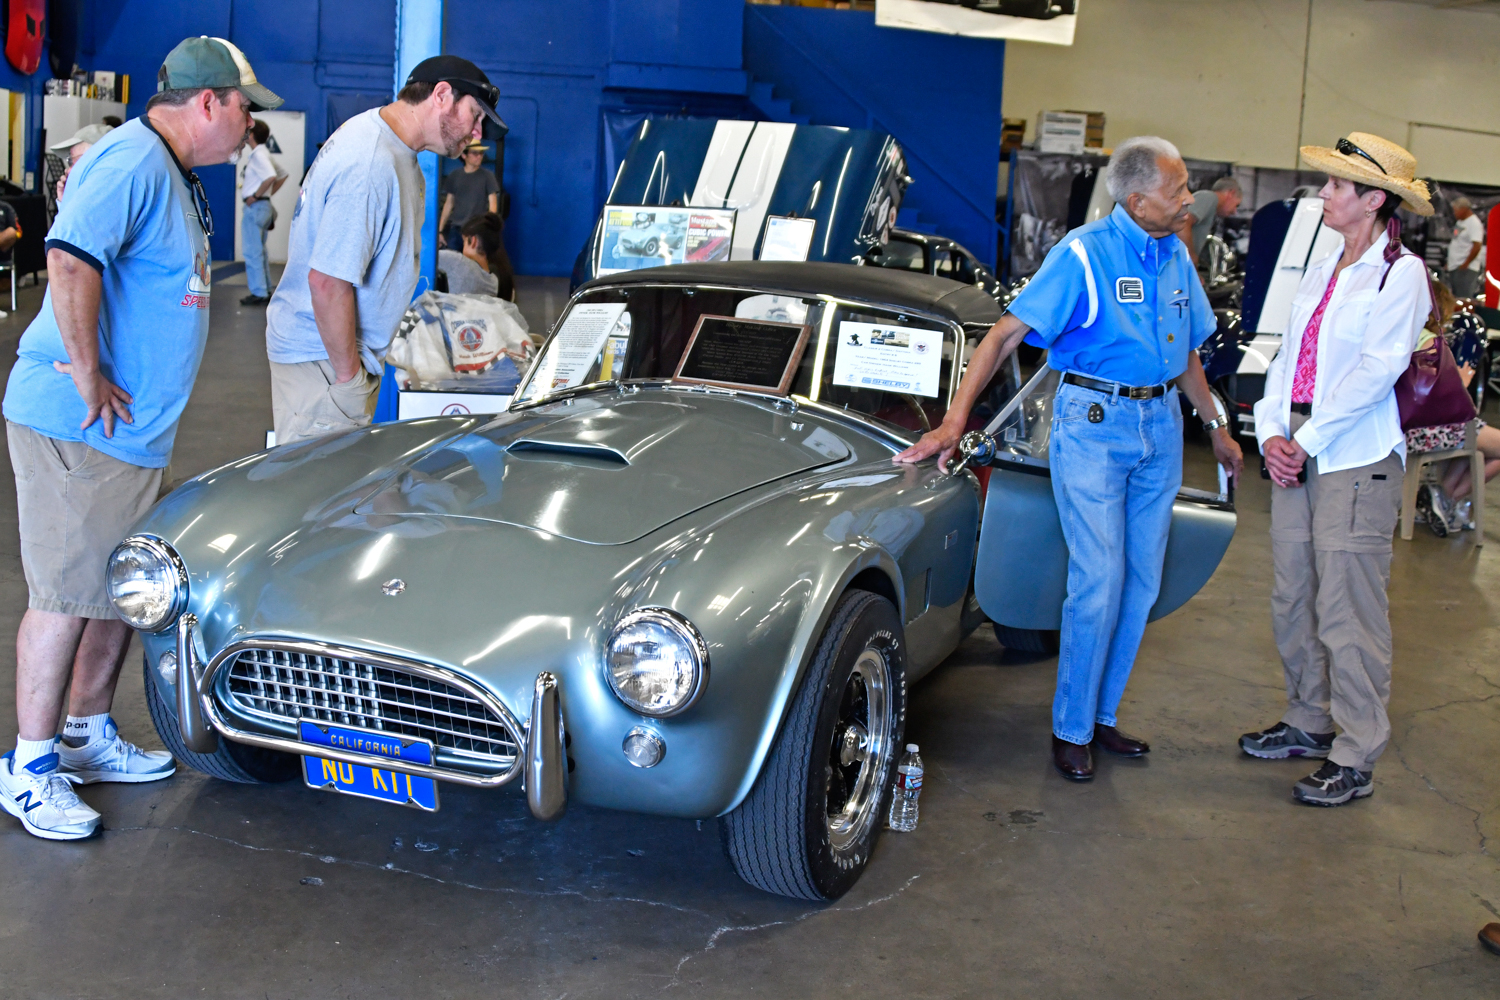 Hank-Williams-orig-64-Shelby-Cobra-289-1